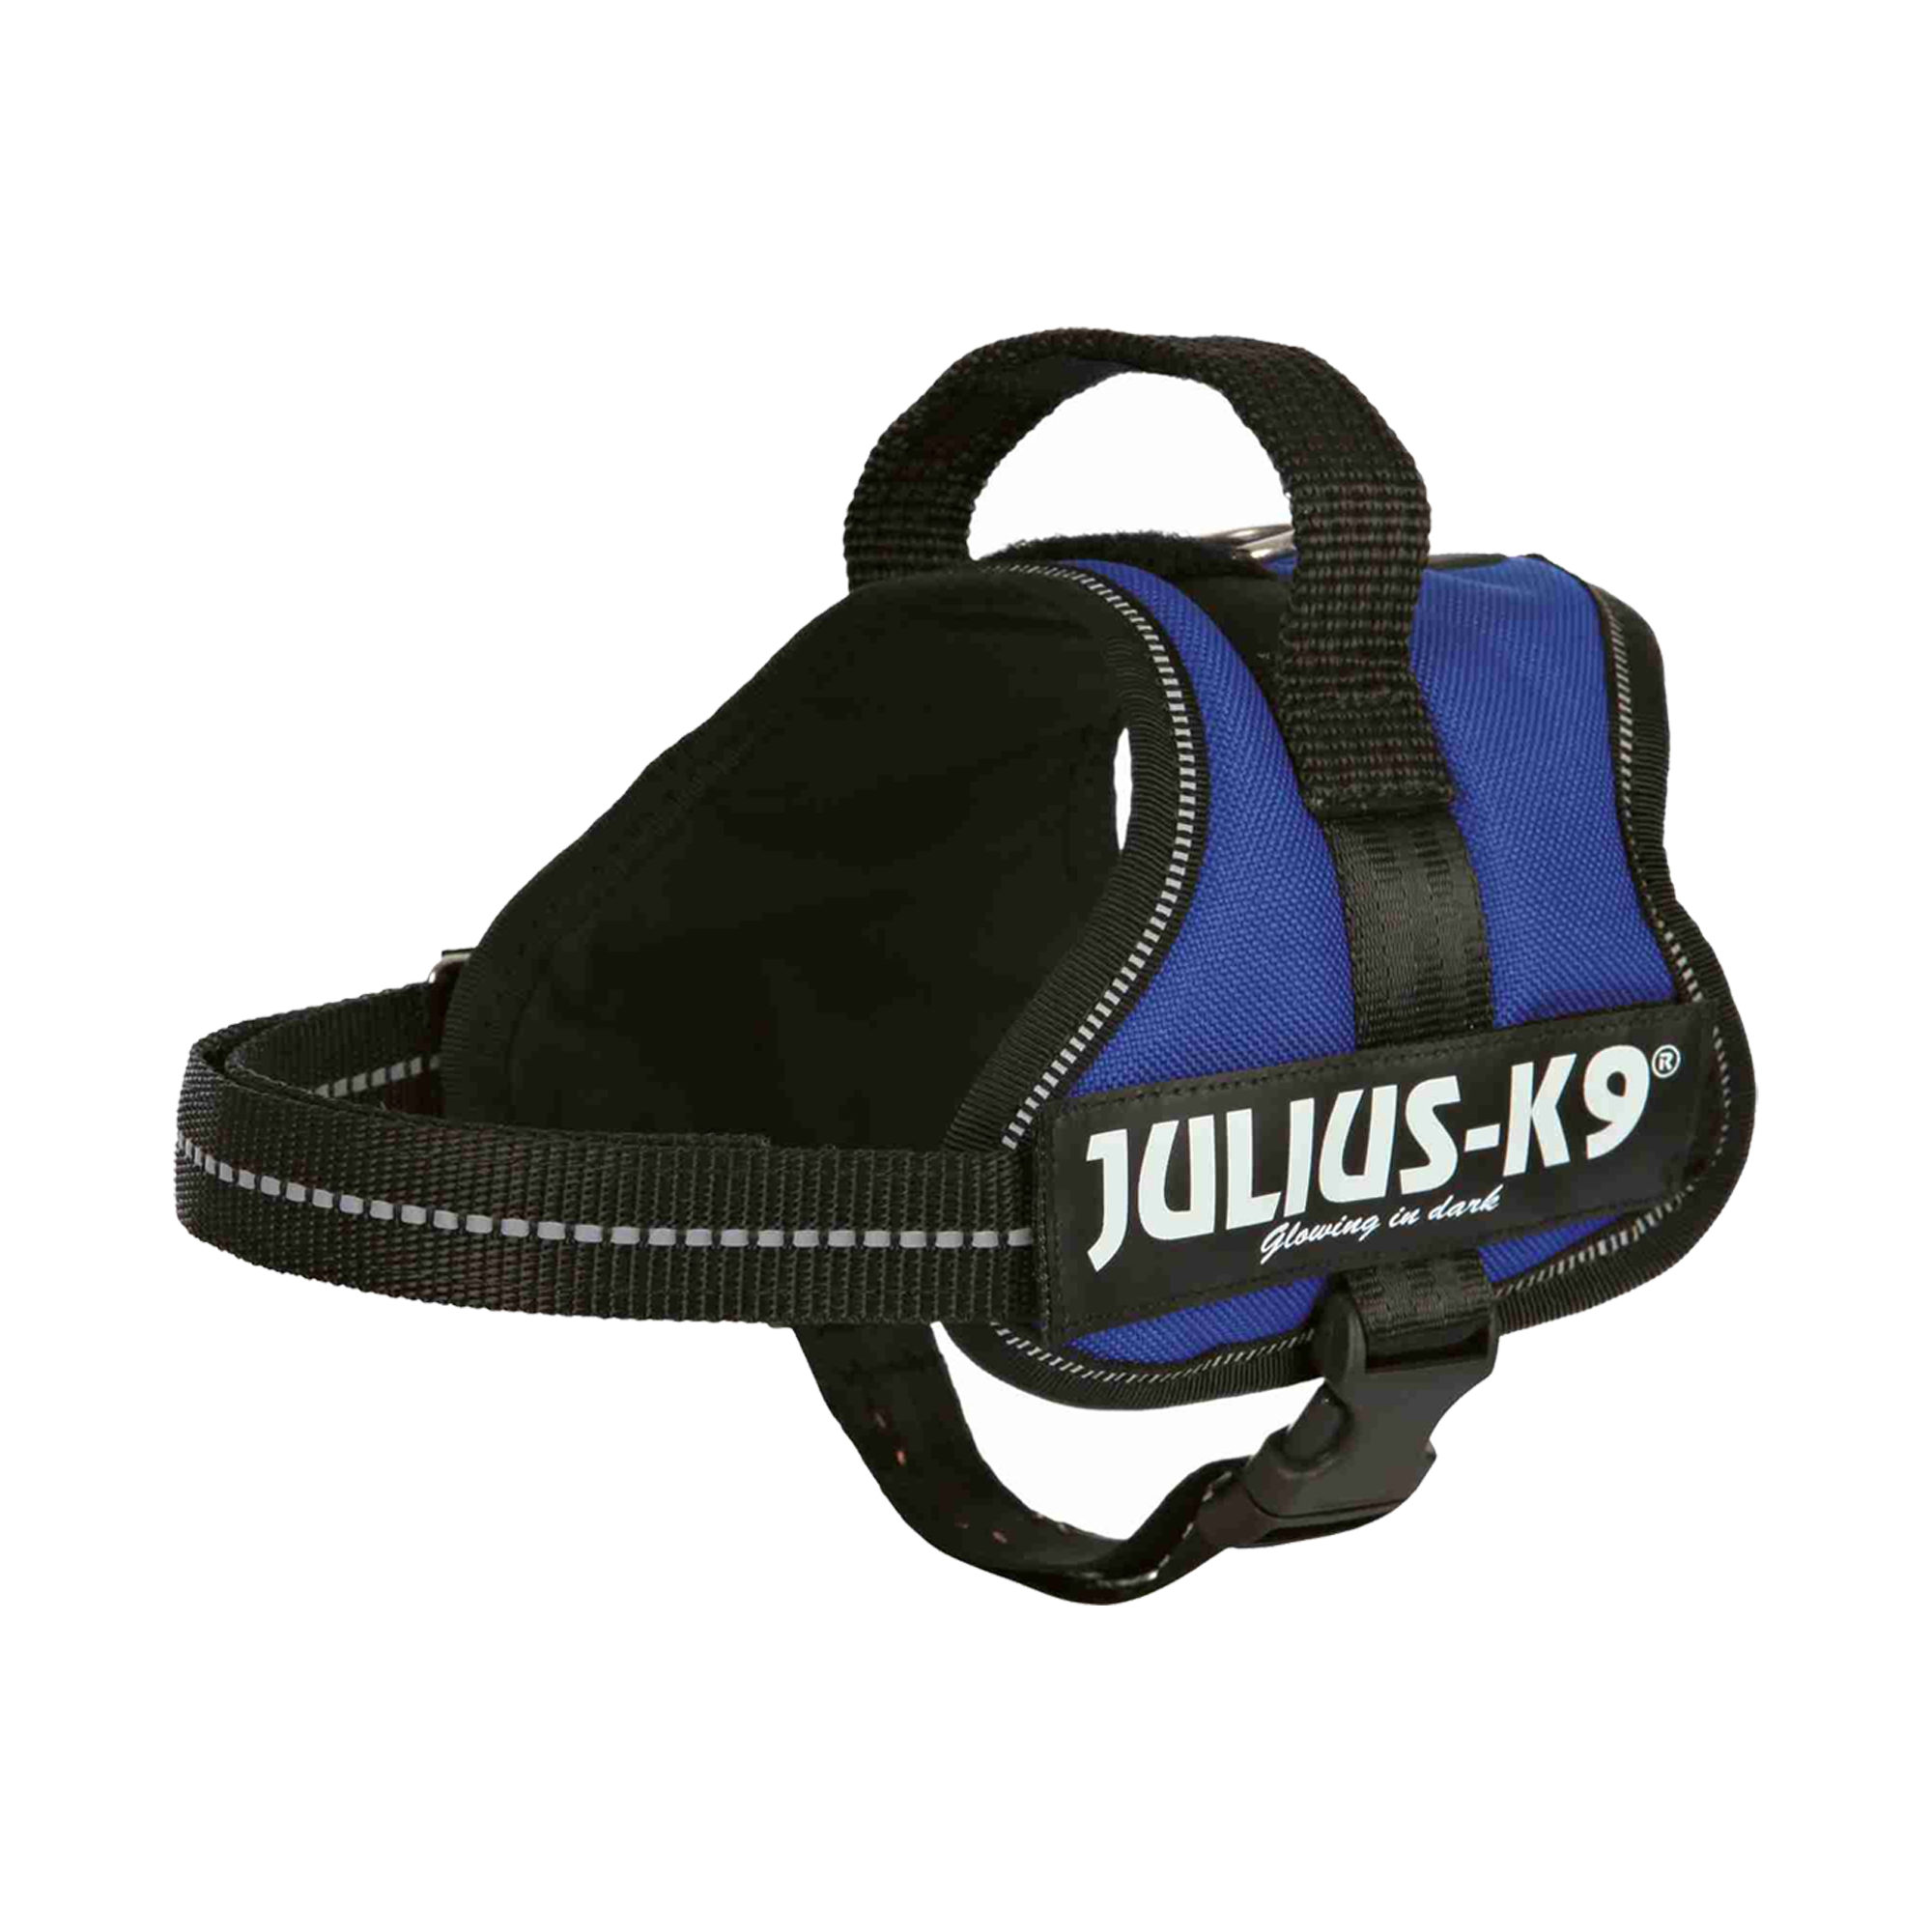 Julius-K9 Powergeschirr - Blau